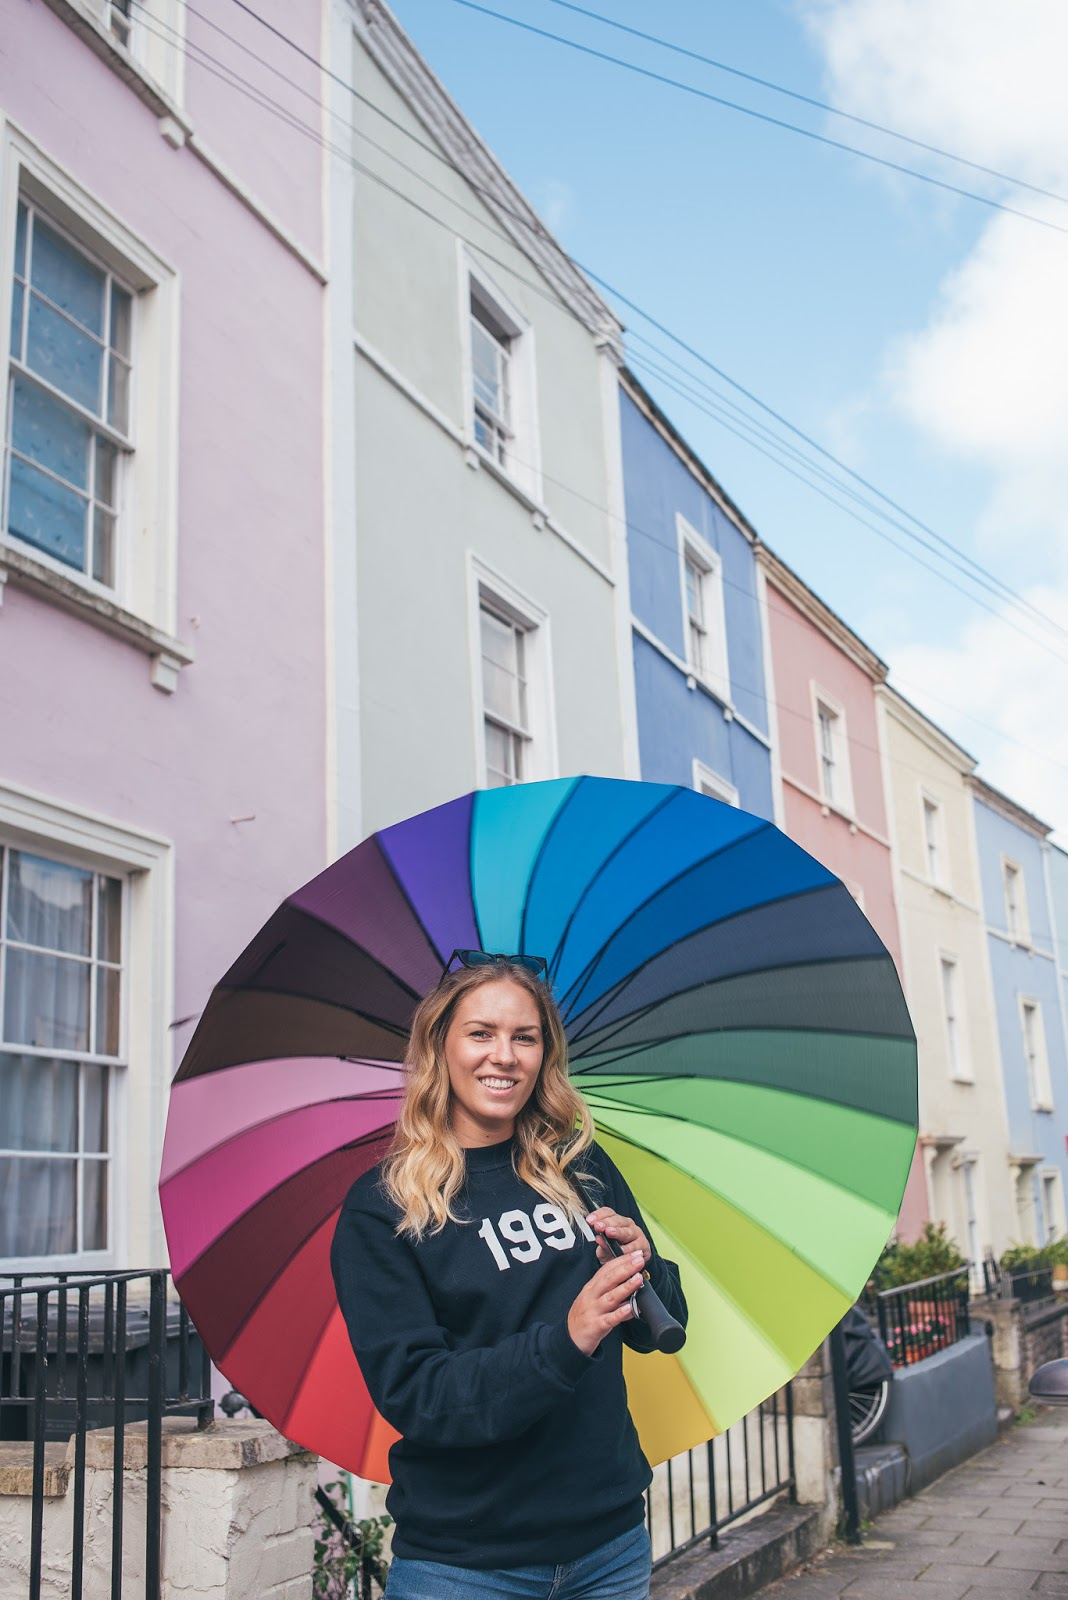 Rachel Emily with bright rainbow umbrella twirling in Cliftonwood, Bristol